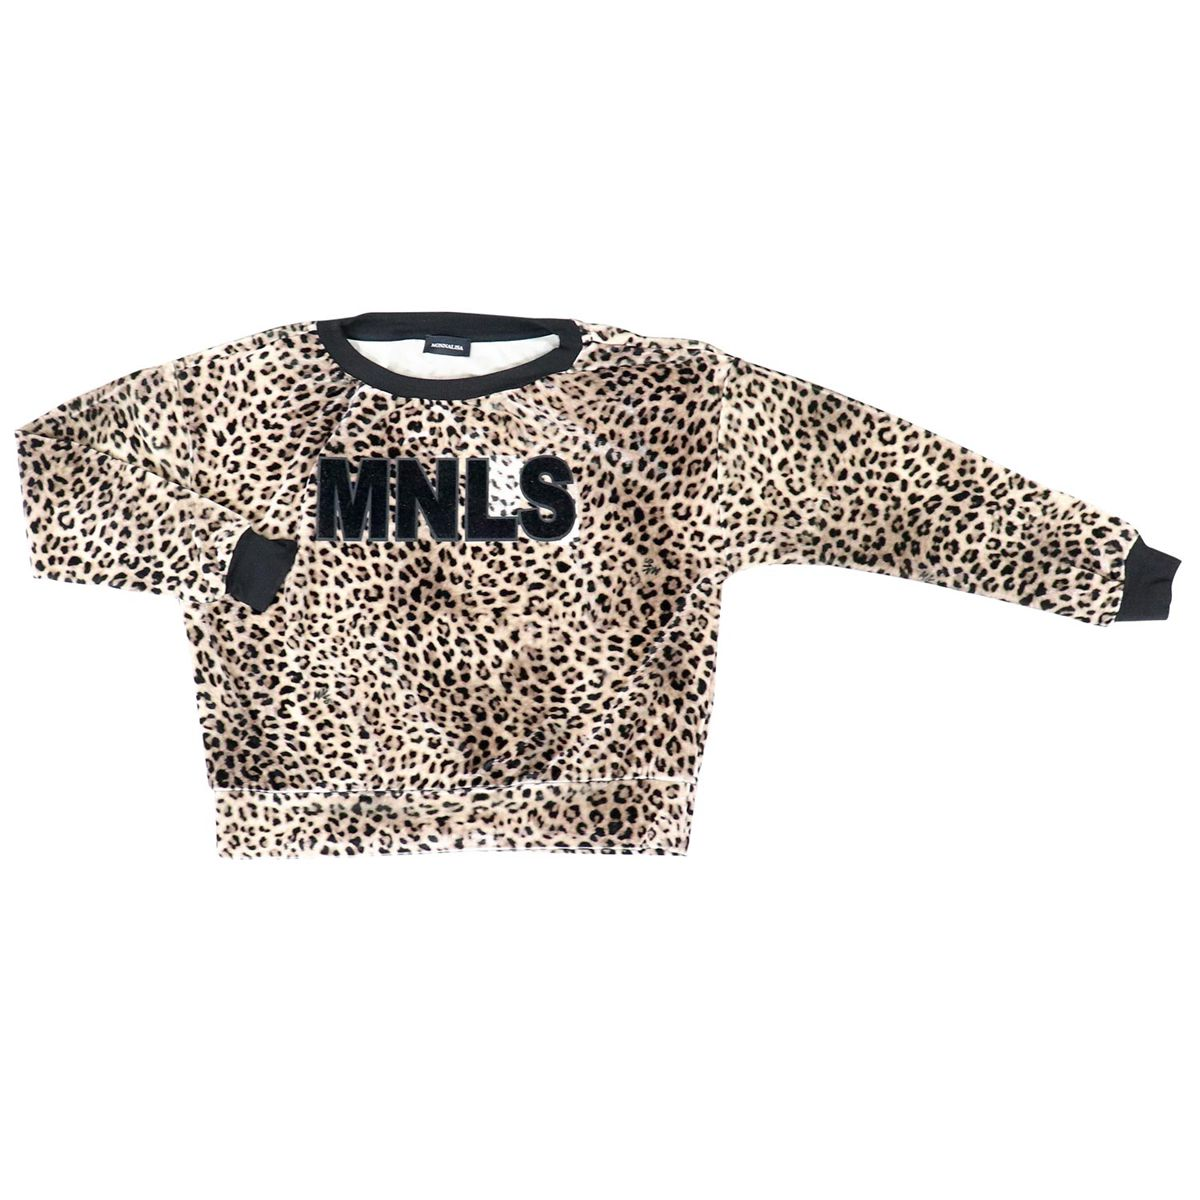 Viscose sweatshirt with all over animal print and lettering Animal print Monnalisa